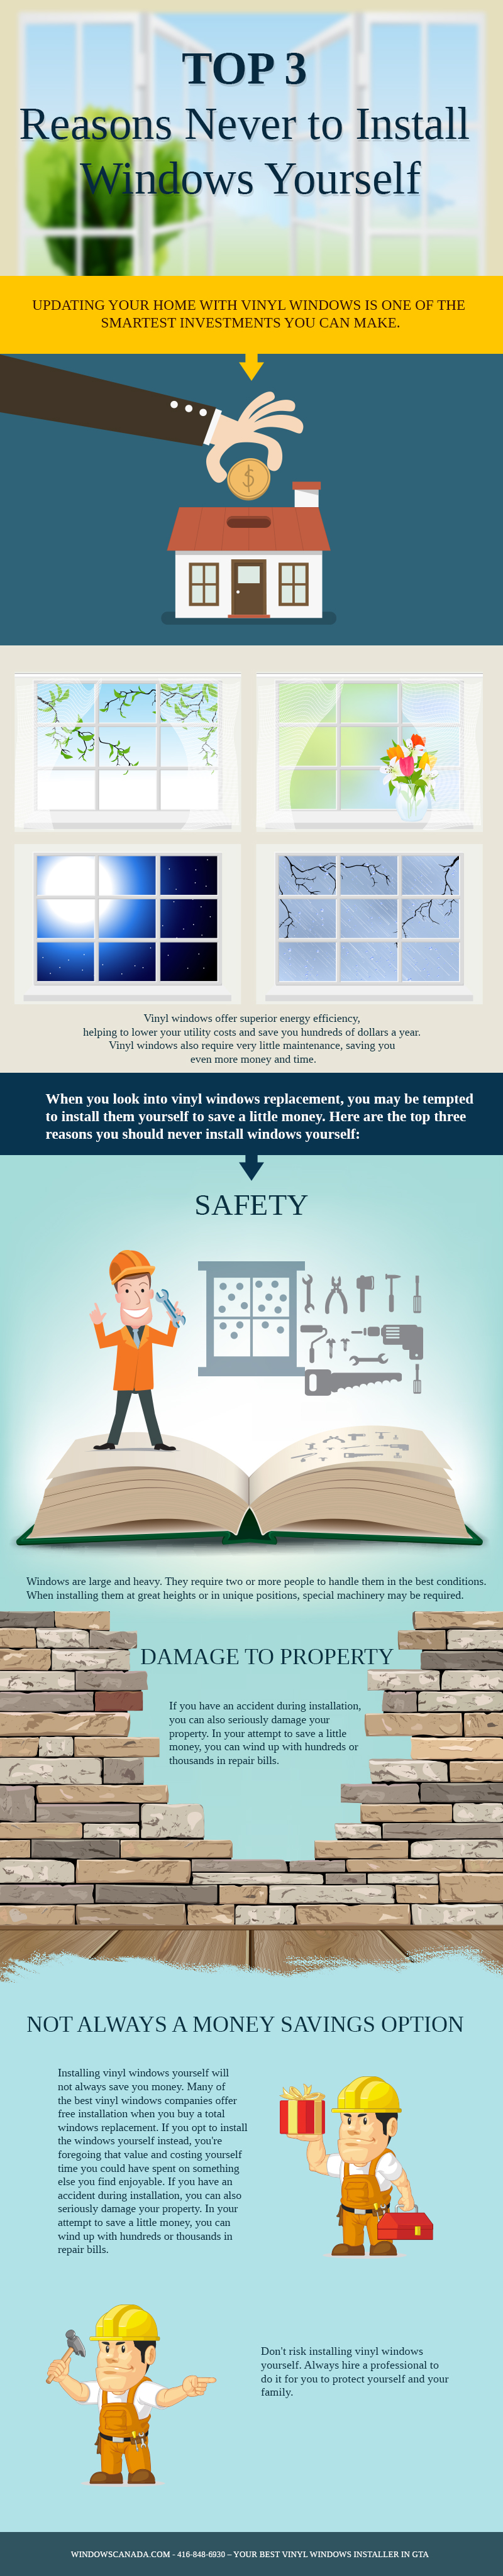 Top 3 Reasons Never to Install Windows Yourself - Infographic